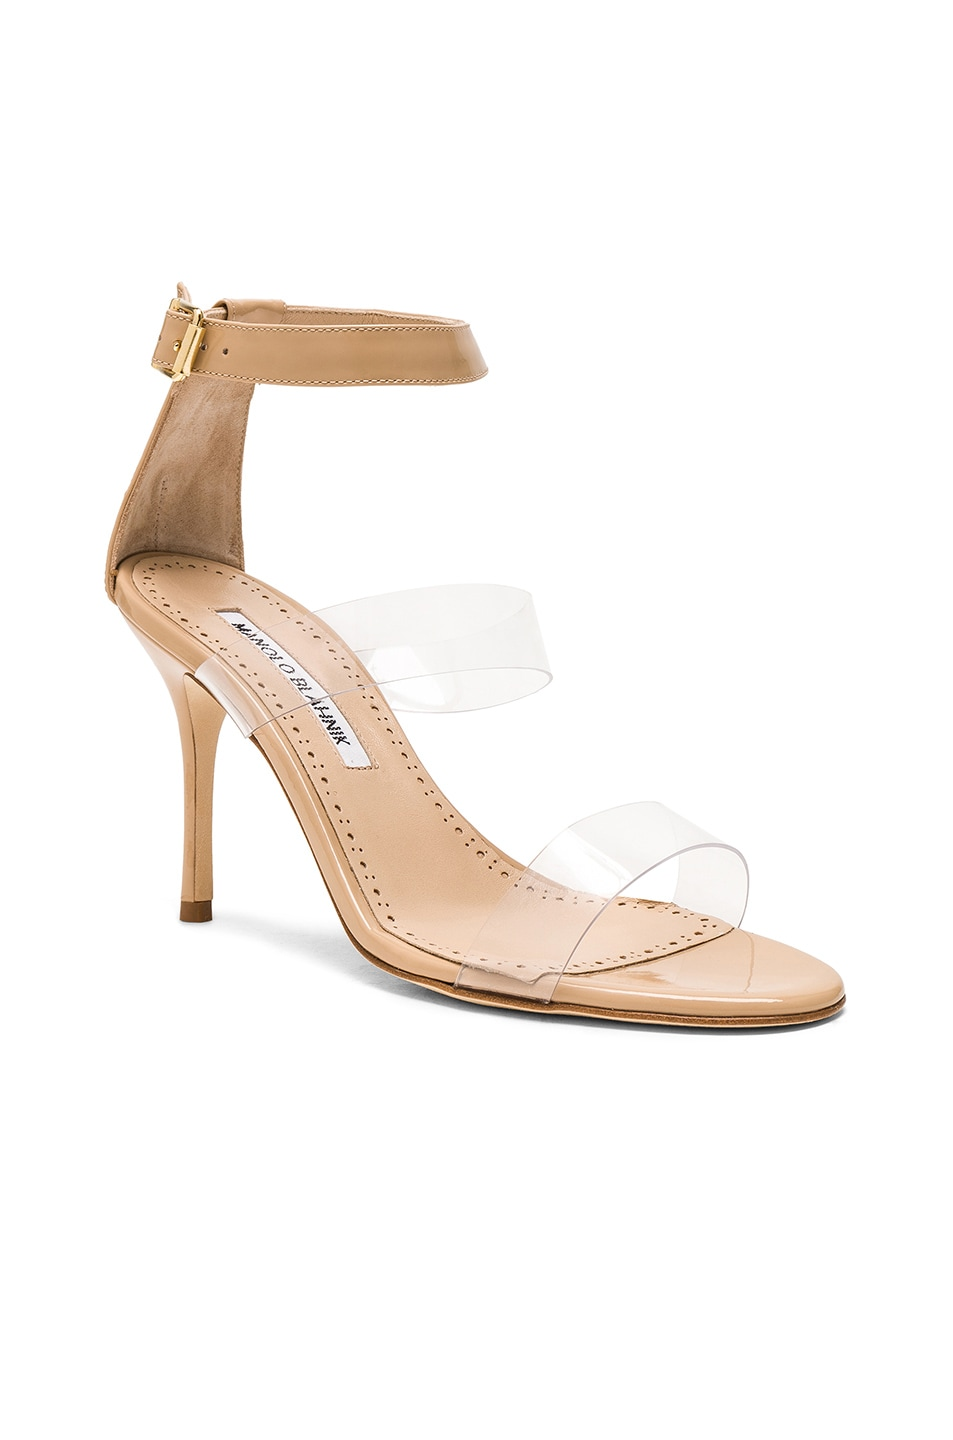 Image 2 of Manolo Blahnik Patent Leather & PVC Kaotic 90 Sandals in Nude Patent & Clear PVC